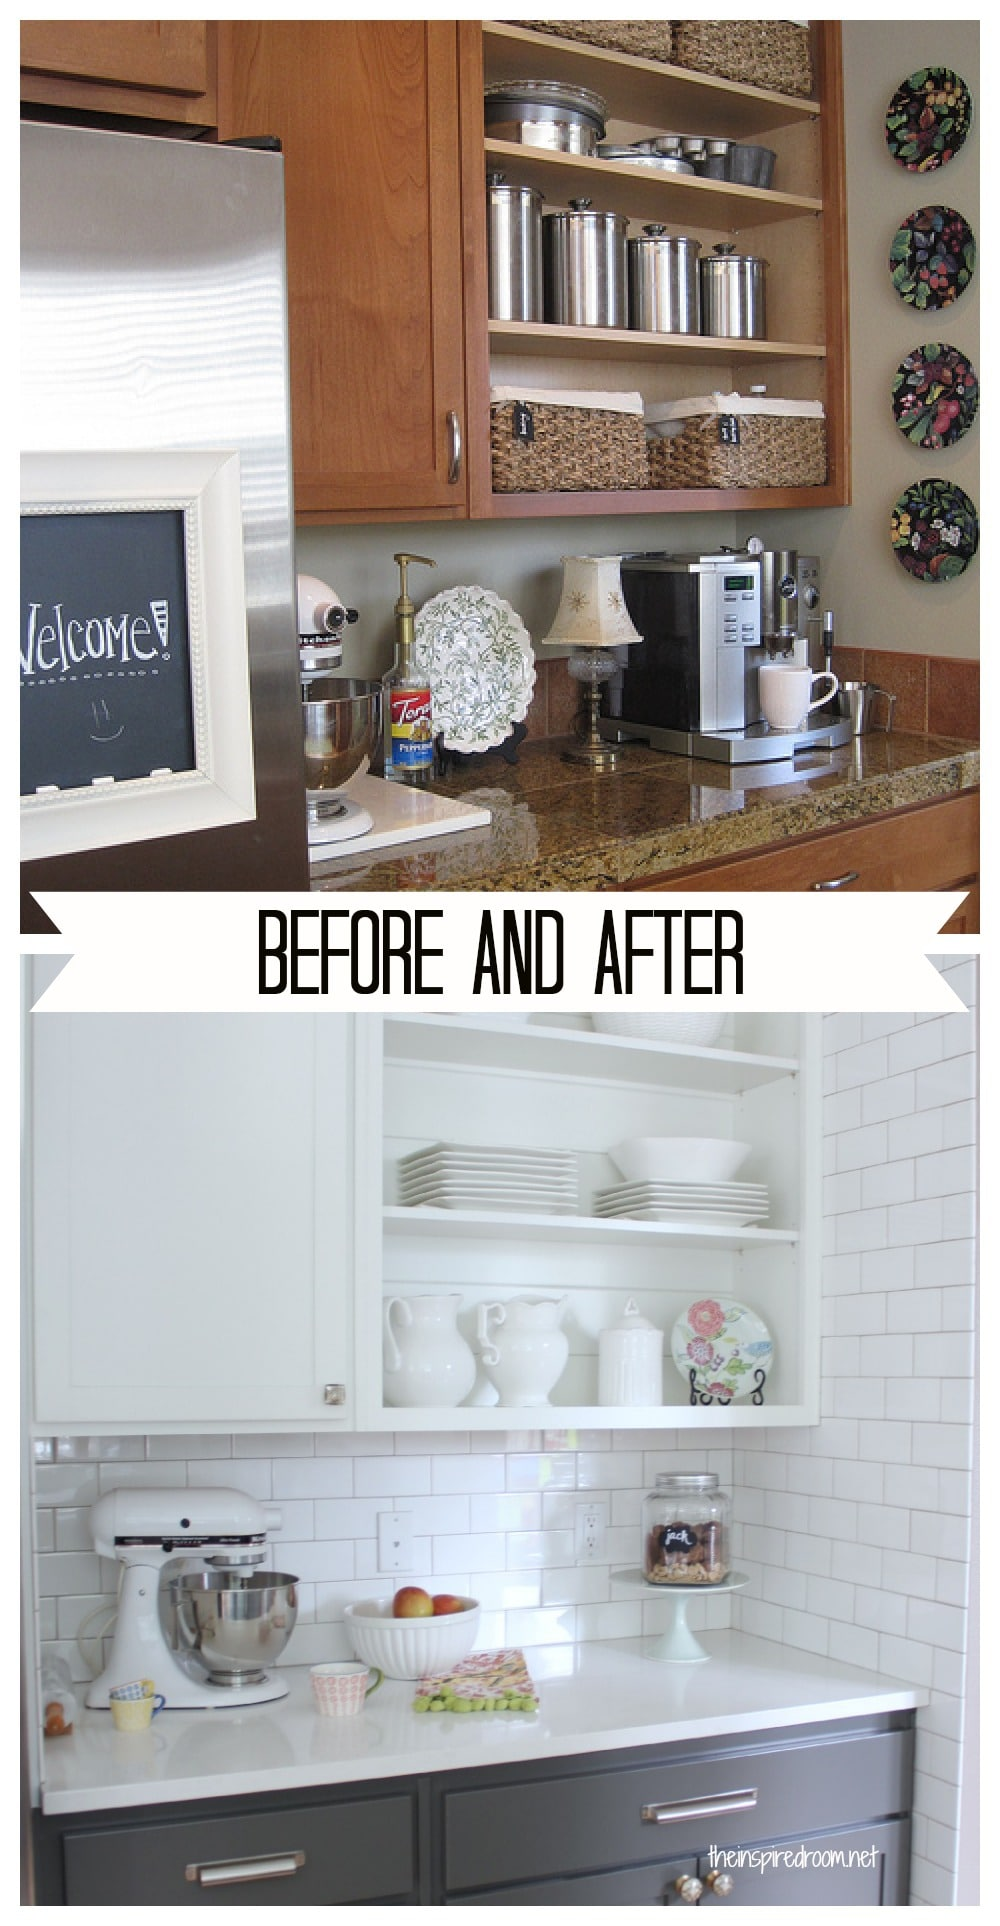 Kitchen Cabinet Colors - Before & After - The Inspired Room on small galley kitchen makeovers, ideas for fireplace makeovers, ideas for bedroom makeovers, ideas for living room makeovers, ideas for lamp makeovers, ideas for mirror makeovers, kitchen counter makeovers, ideas for kitchen countertops, ideas small kitchen makeovers before and after,